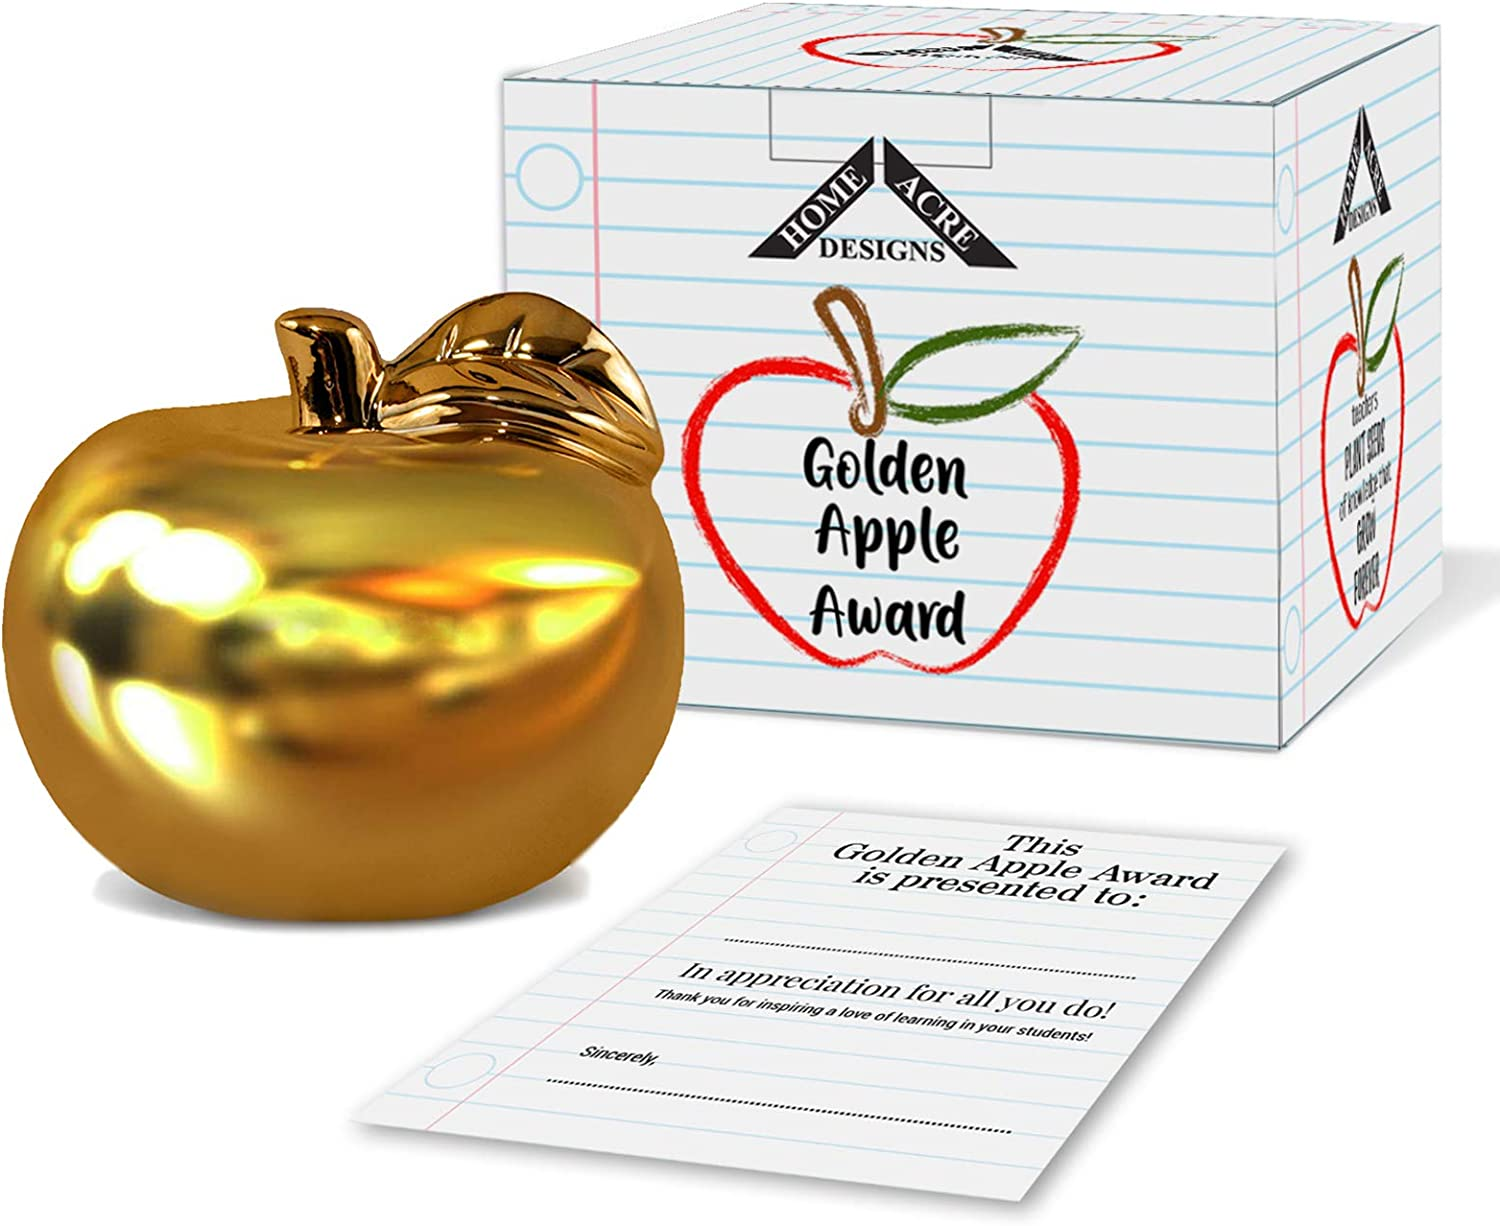 Teacher Gifts -Teacher Gifts for Women-Ceramic Gold Apple Teacher Appreciation Gift with Personalized Card or Certificate-Teacher Gifts for Men-Golden Apple Award-Teacher Gifts for Classroom